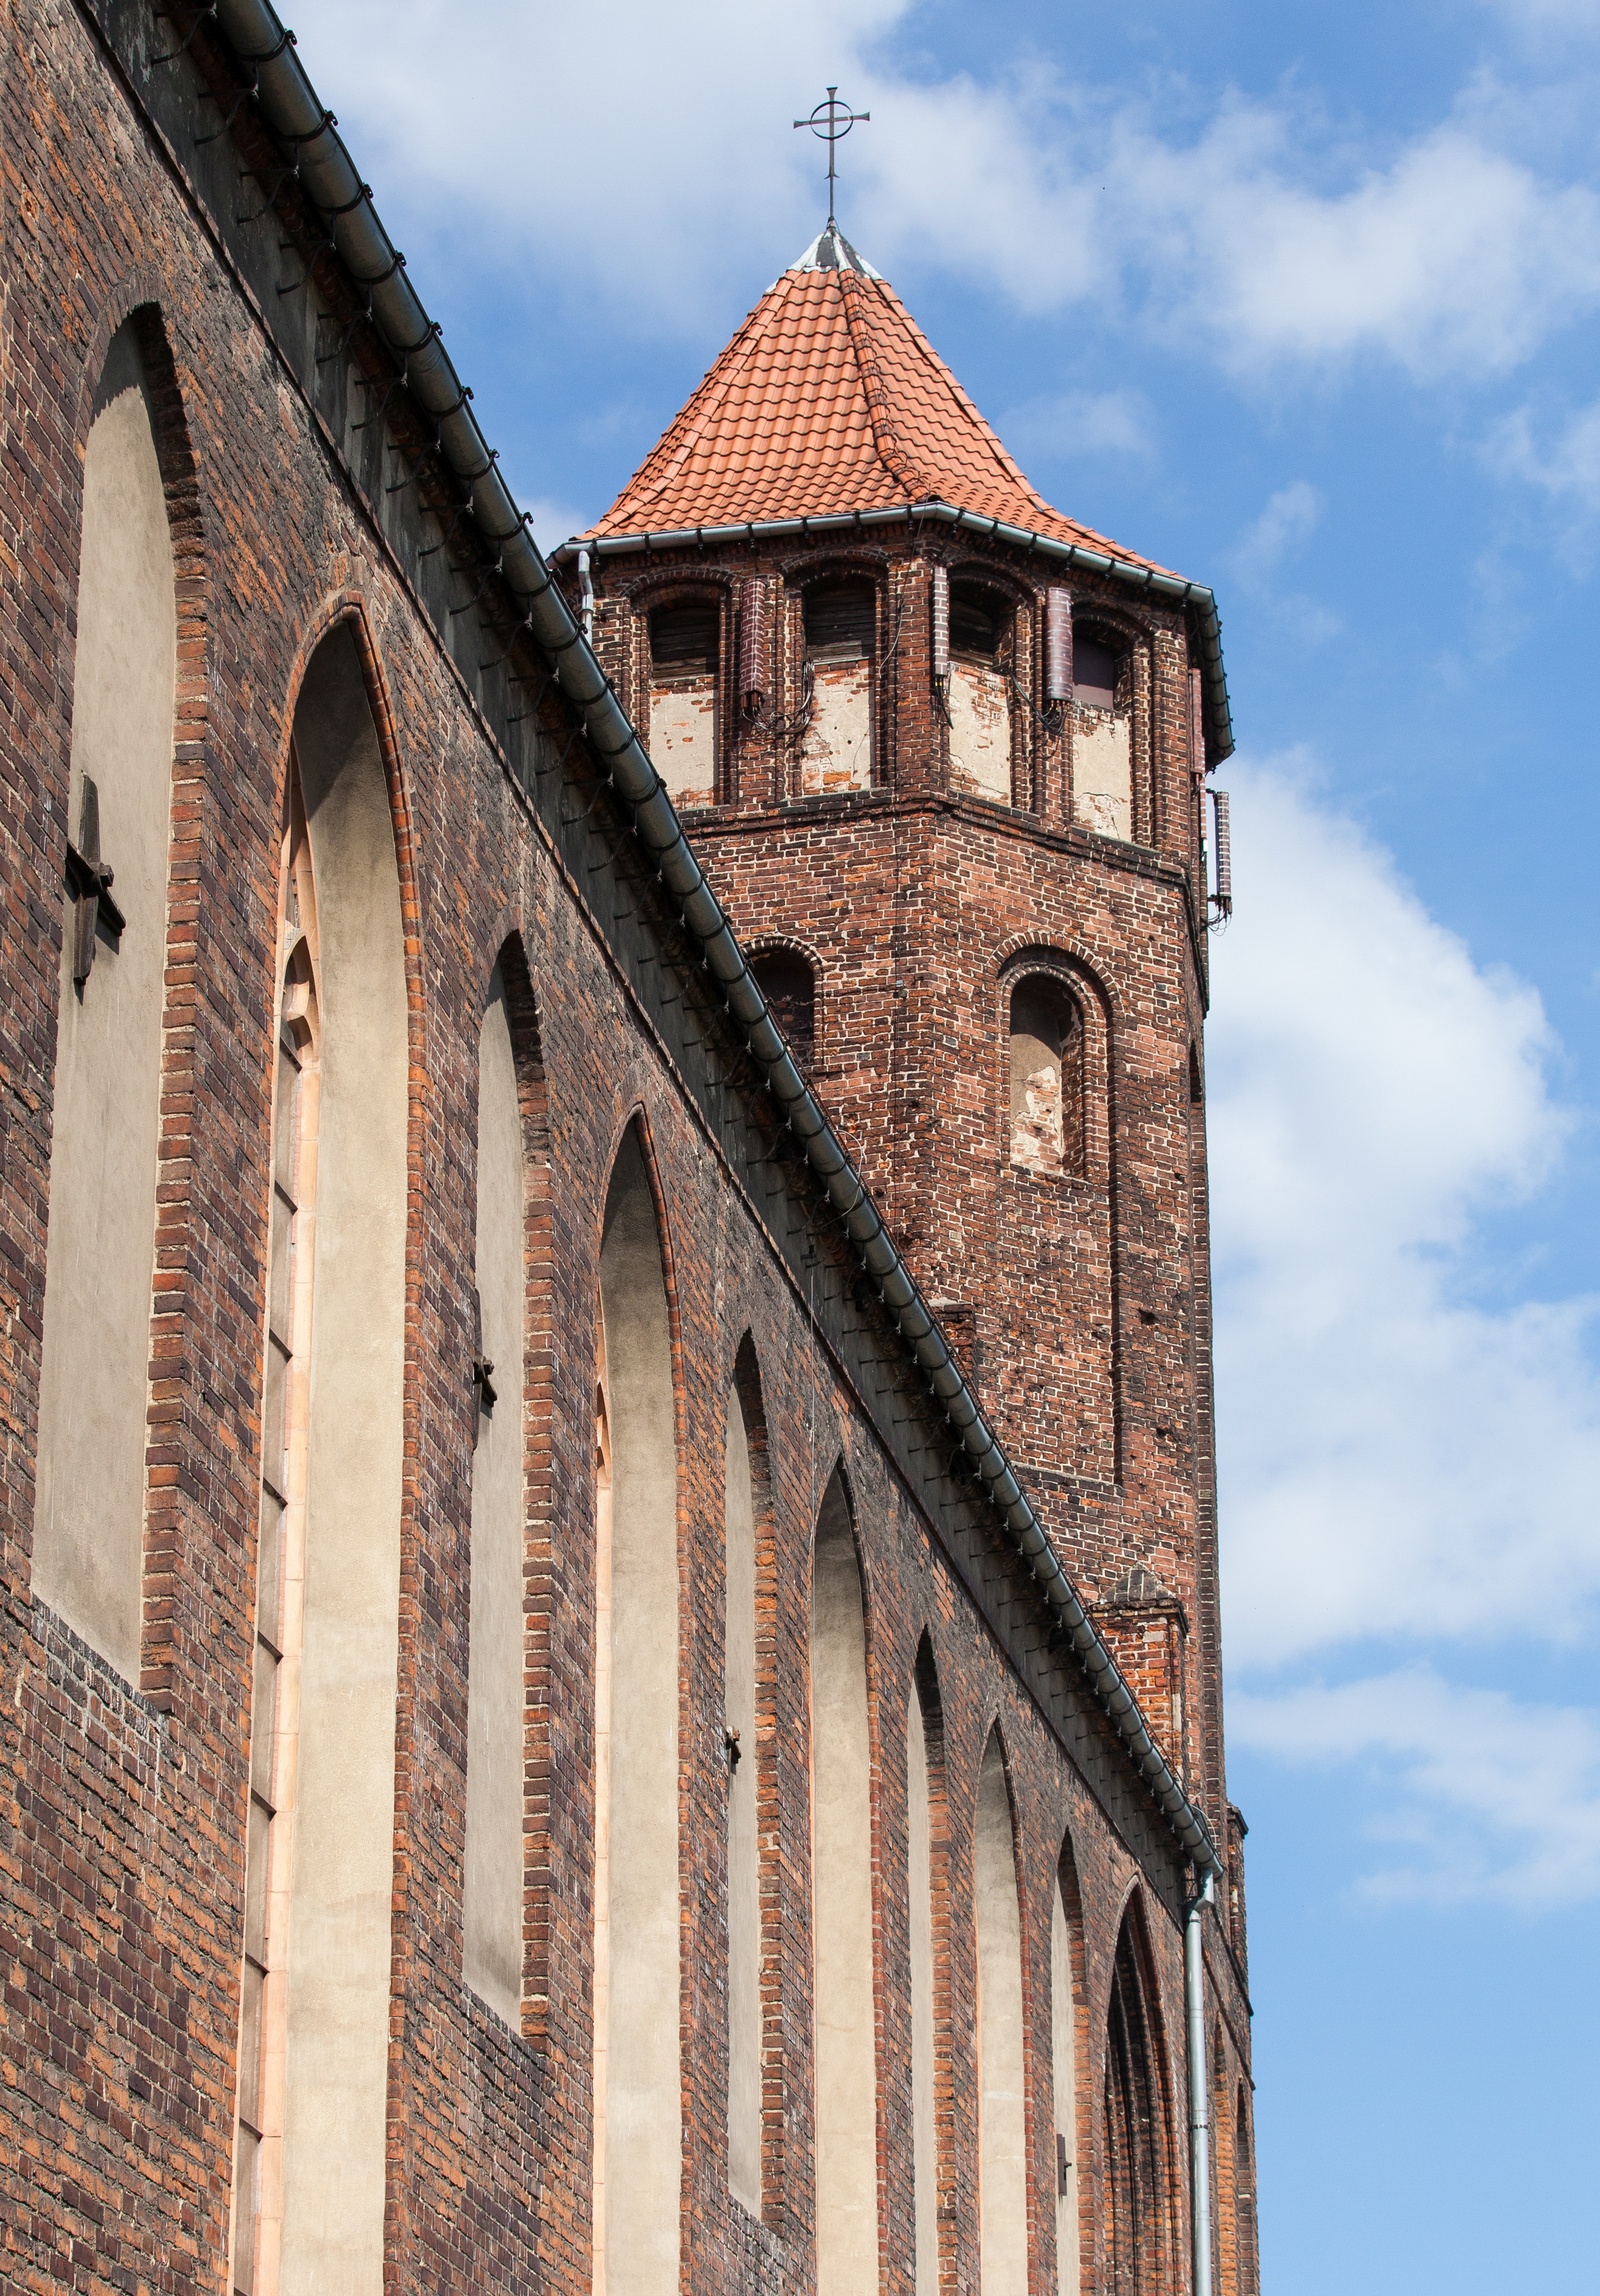 Gdansk city church, Poland, June 2014, picture 36